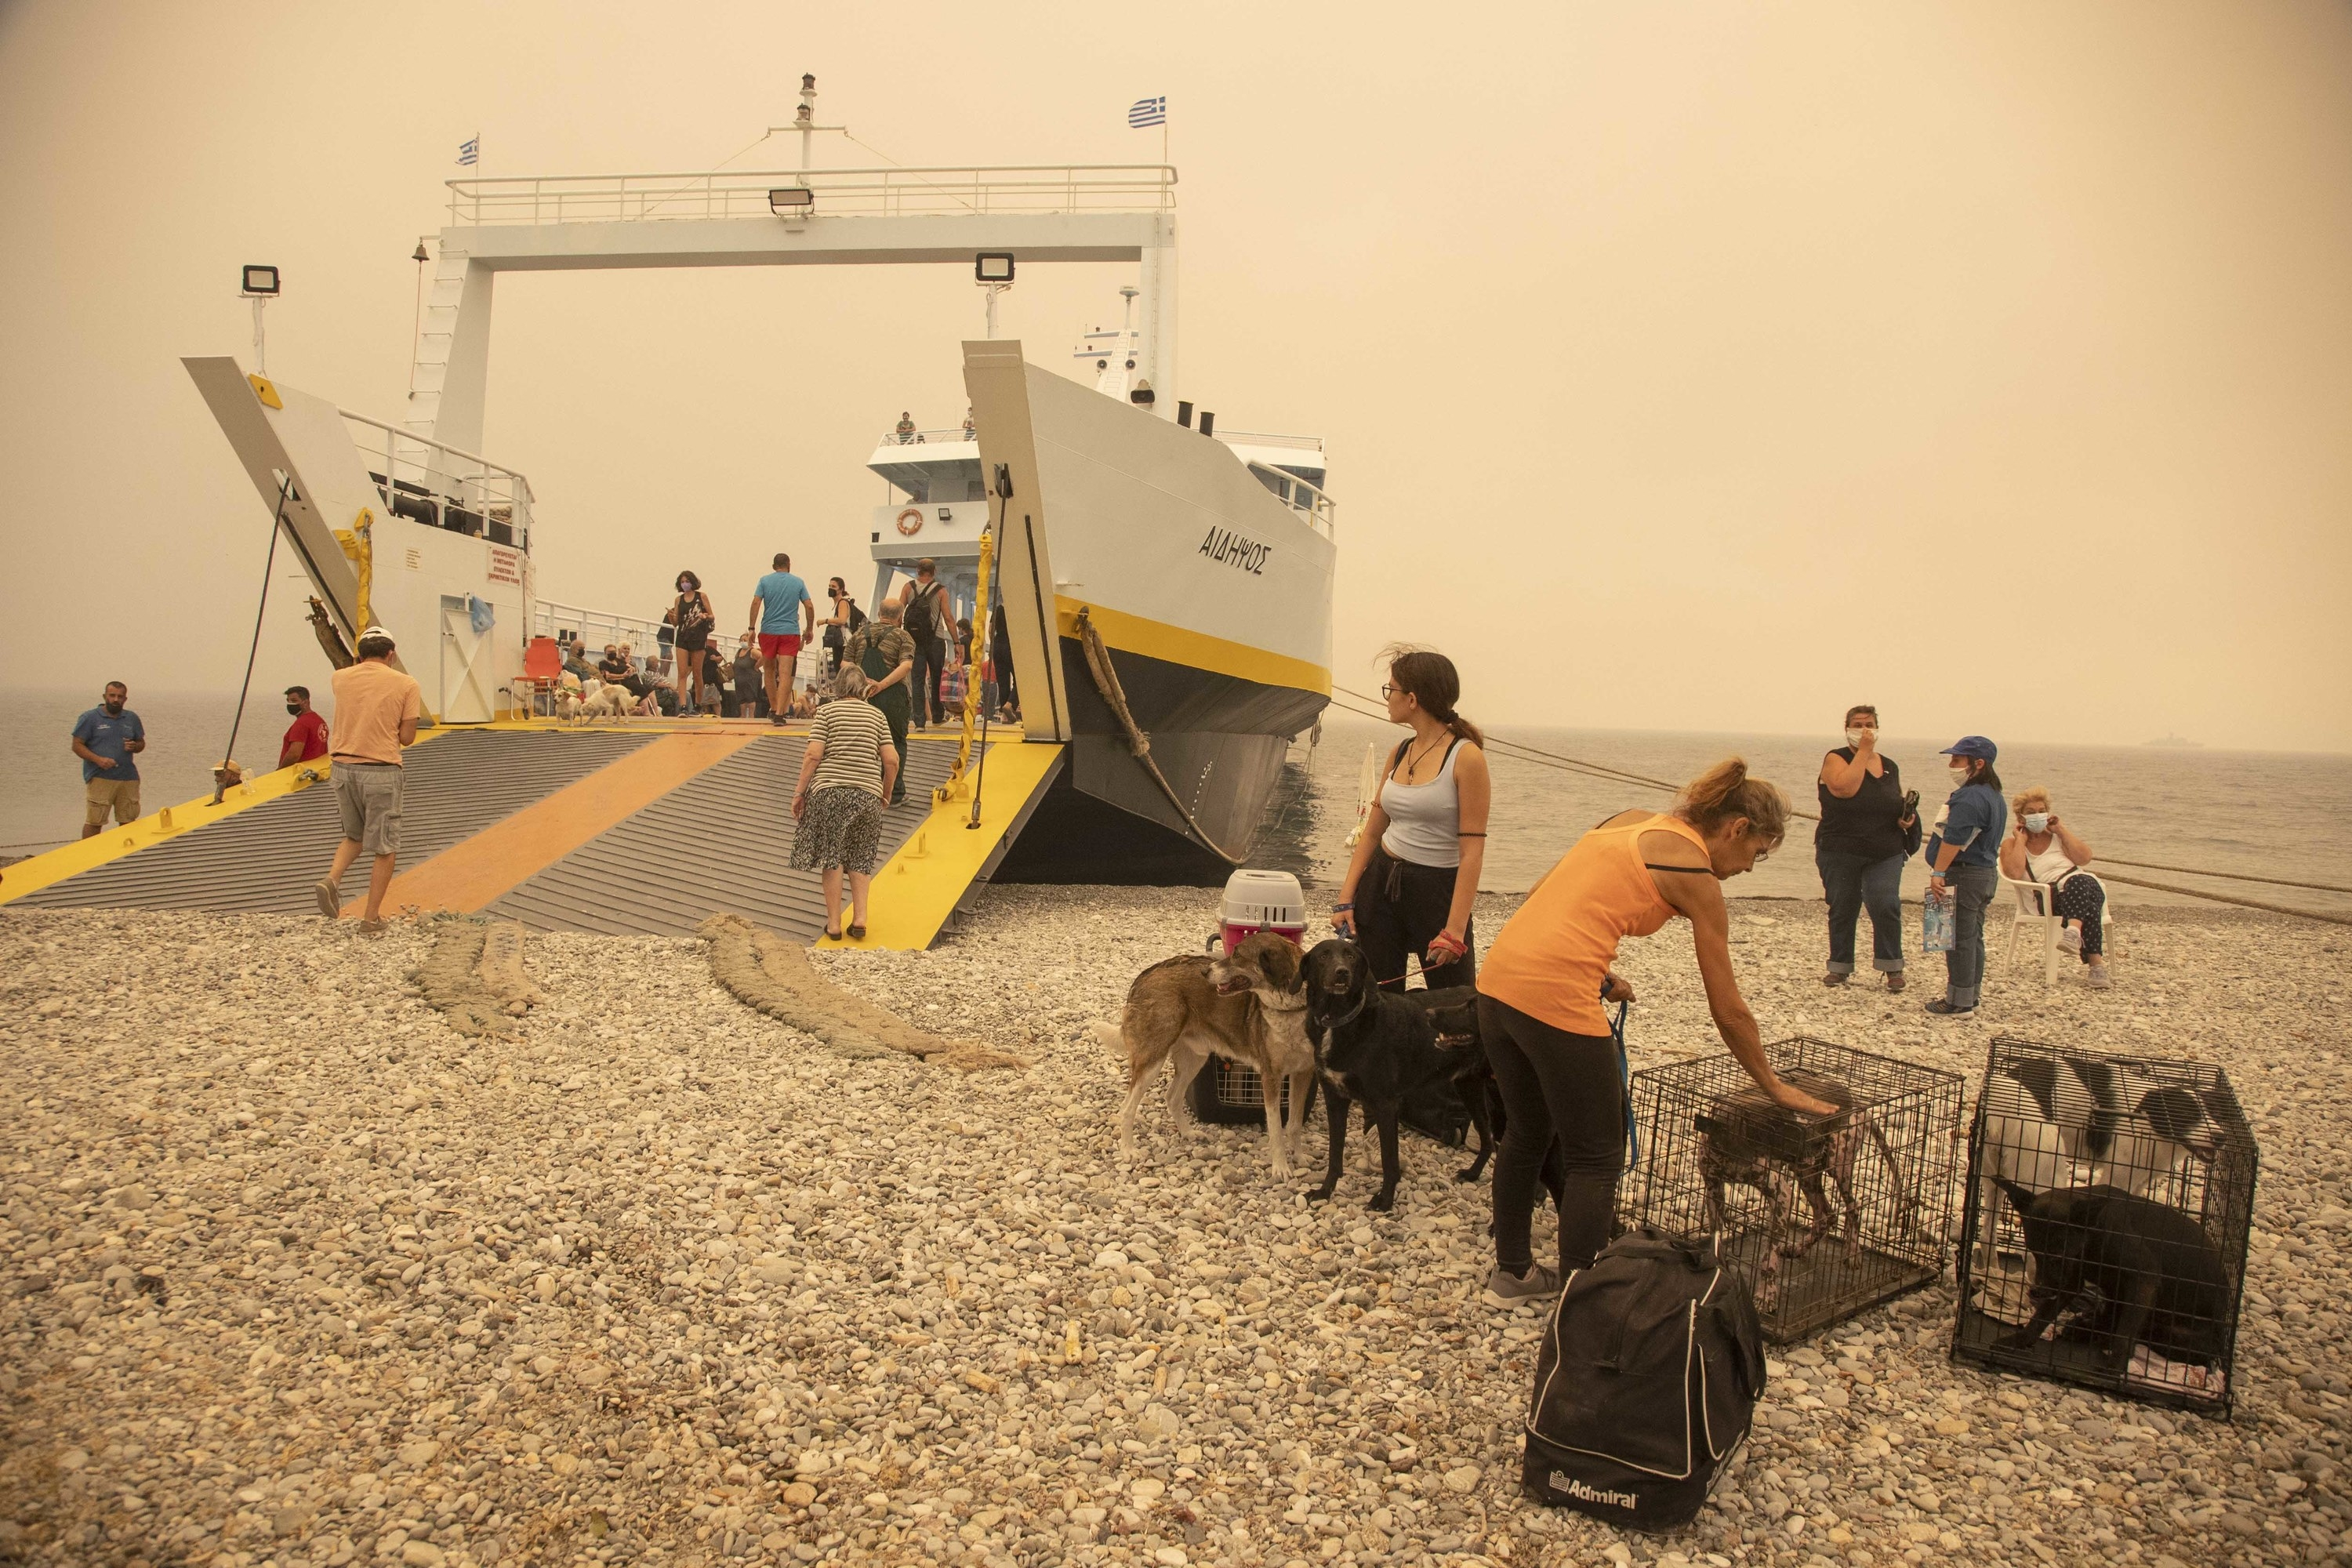 People and their animals stand on a rocky shore before boarding a large boat to evacuate their home island